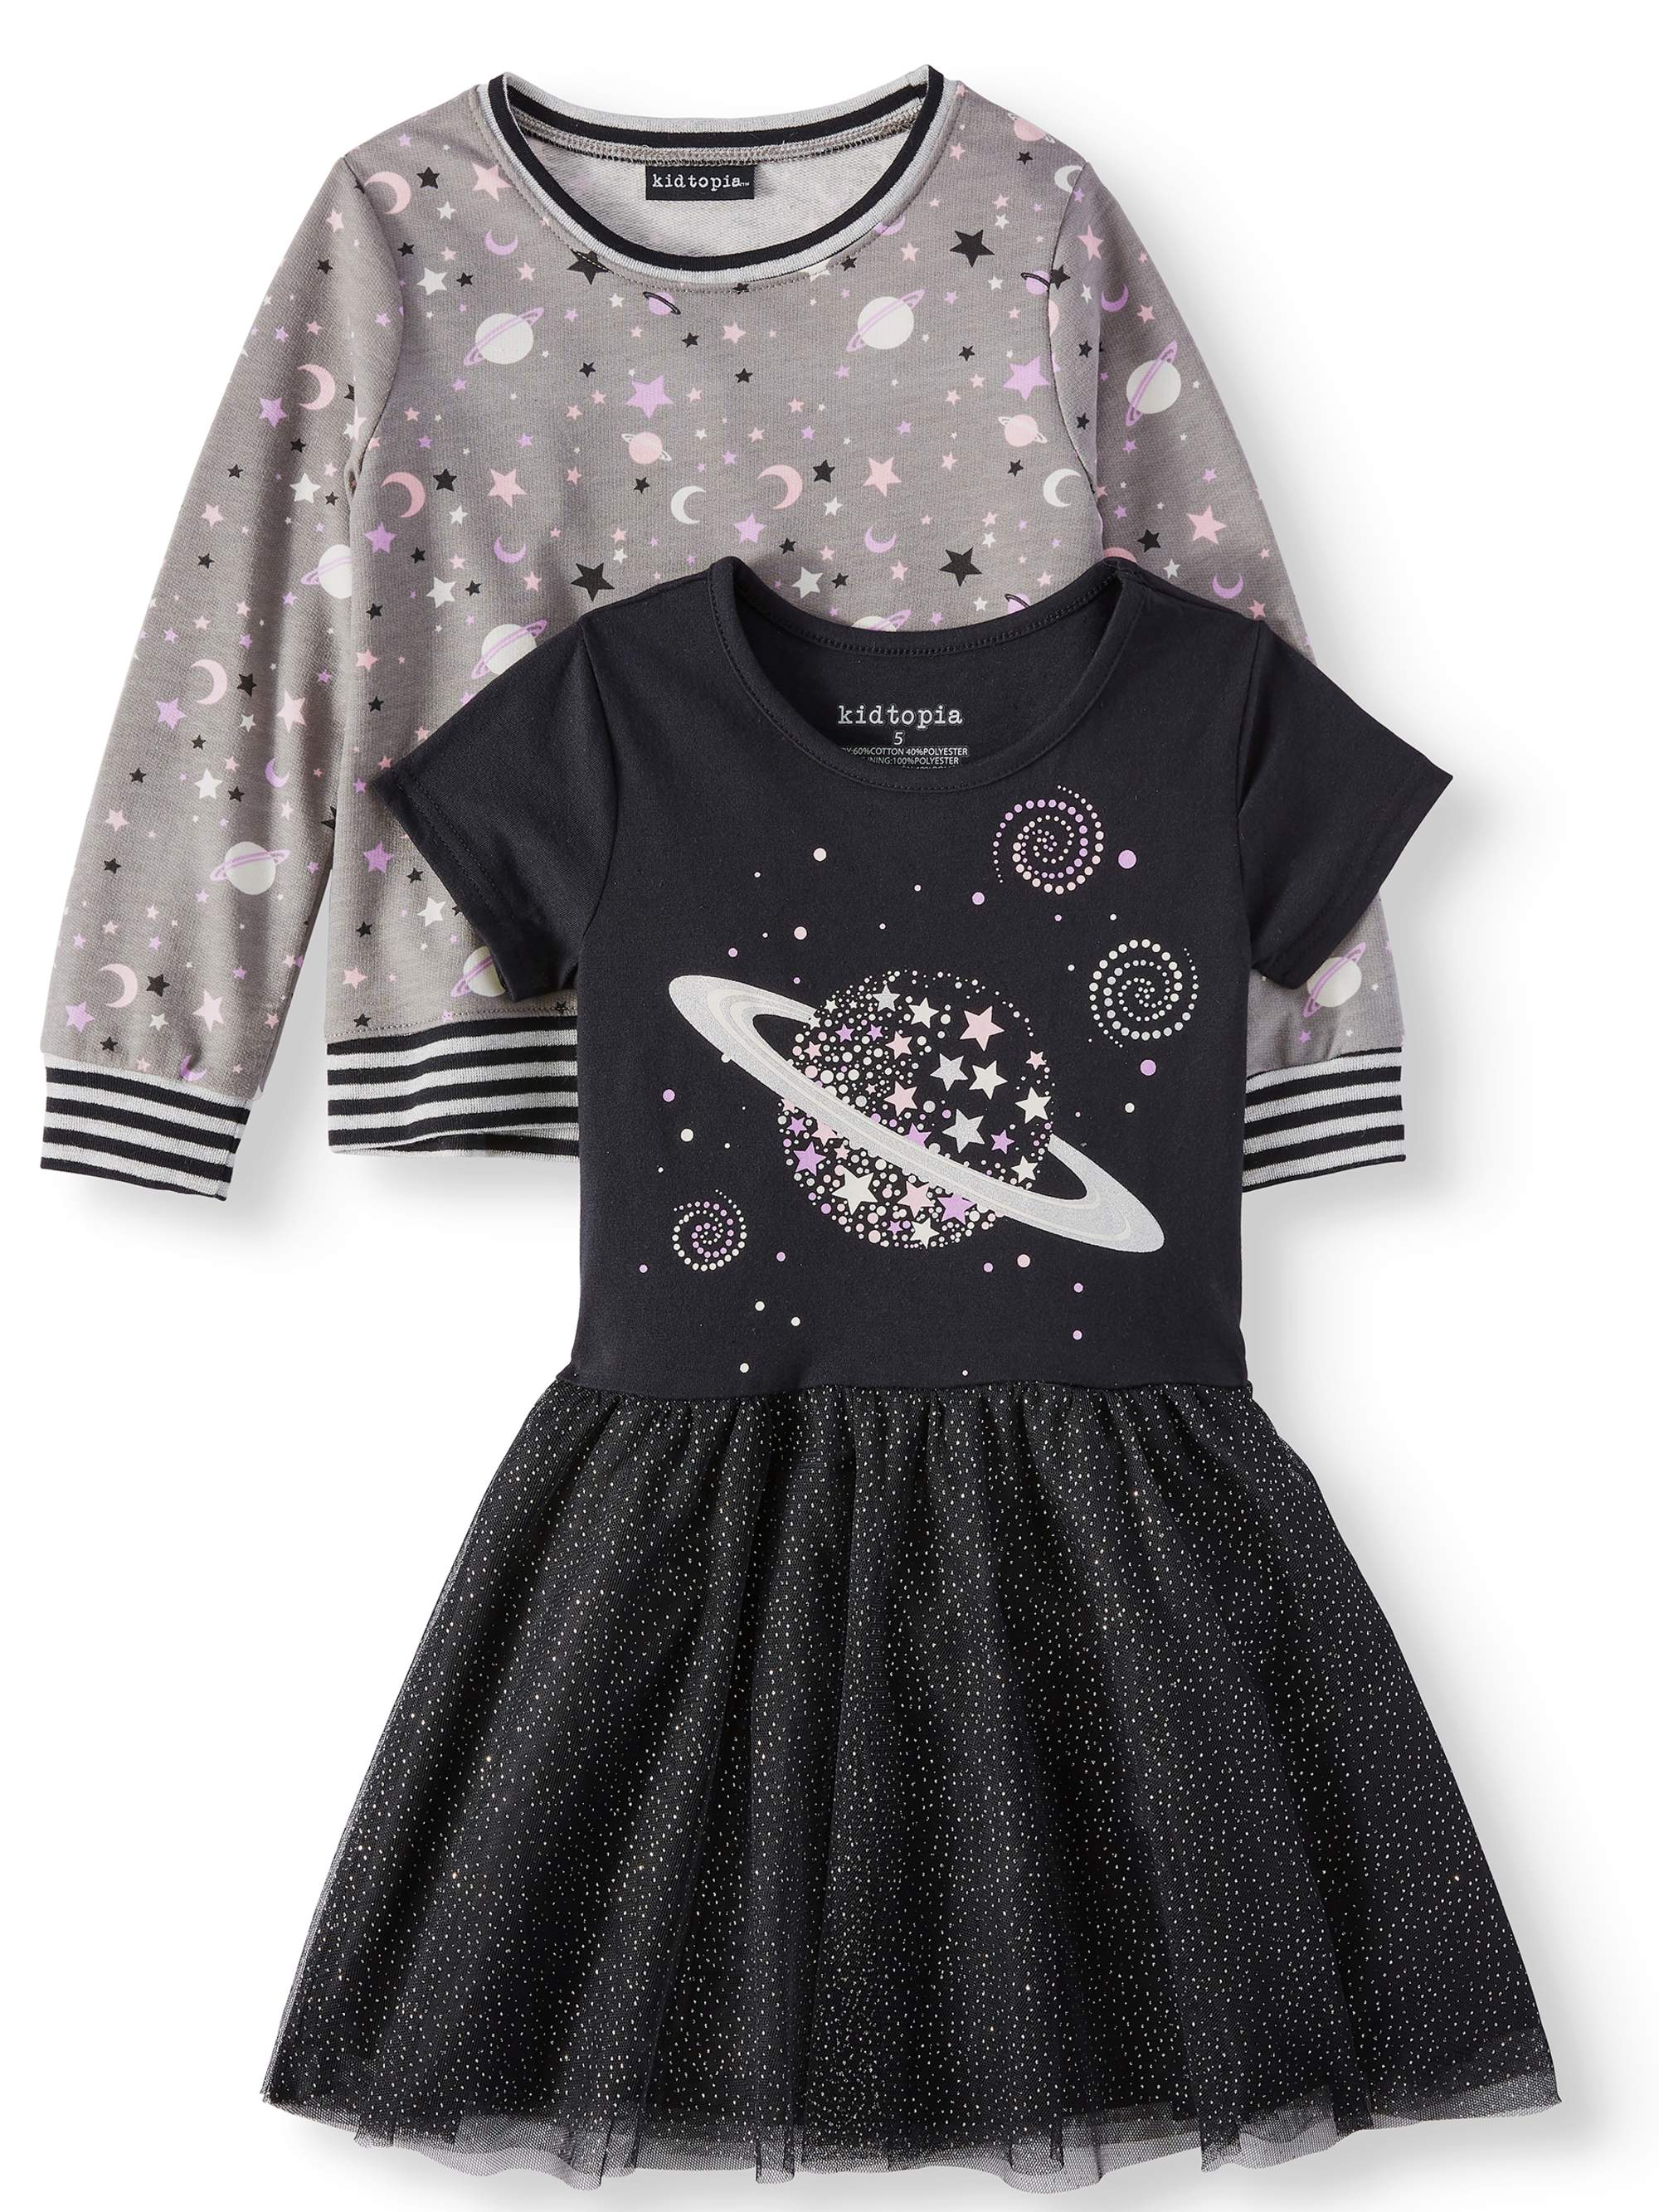 KidTopia Jersey Mesh Dress and Sweatshirt Mix and Match, 2-Piece Set (Little Girls)